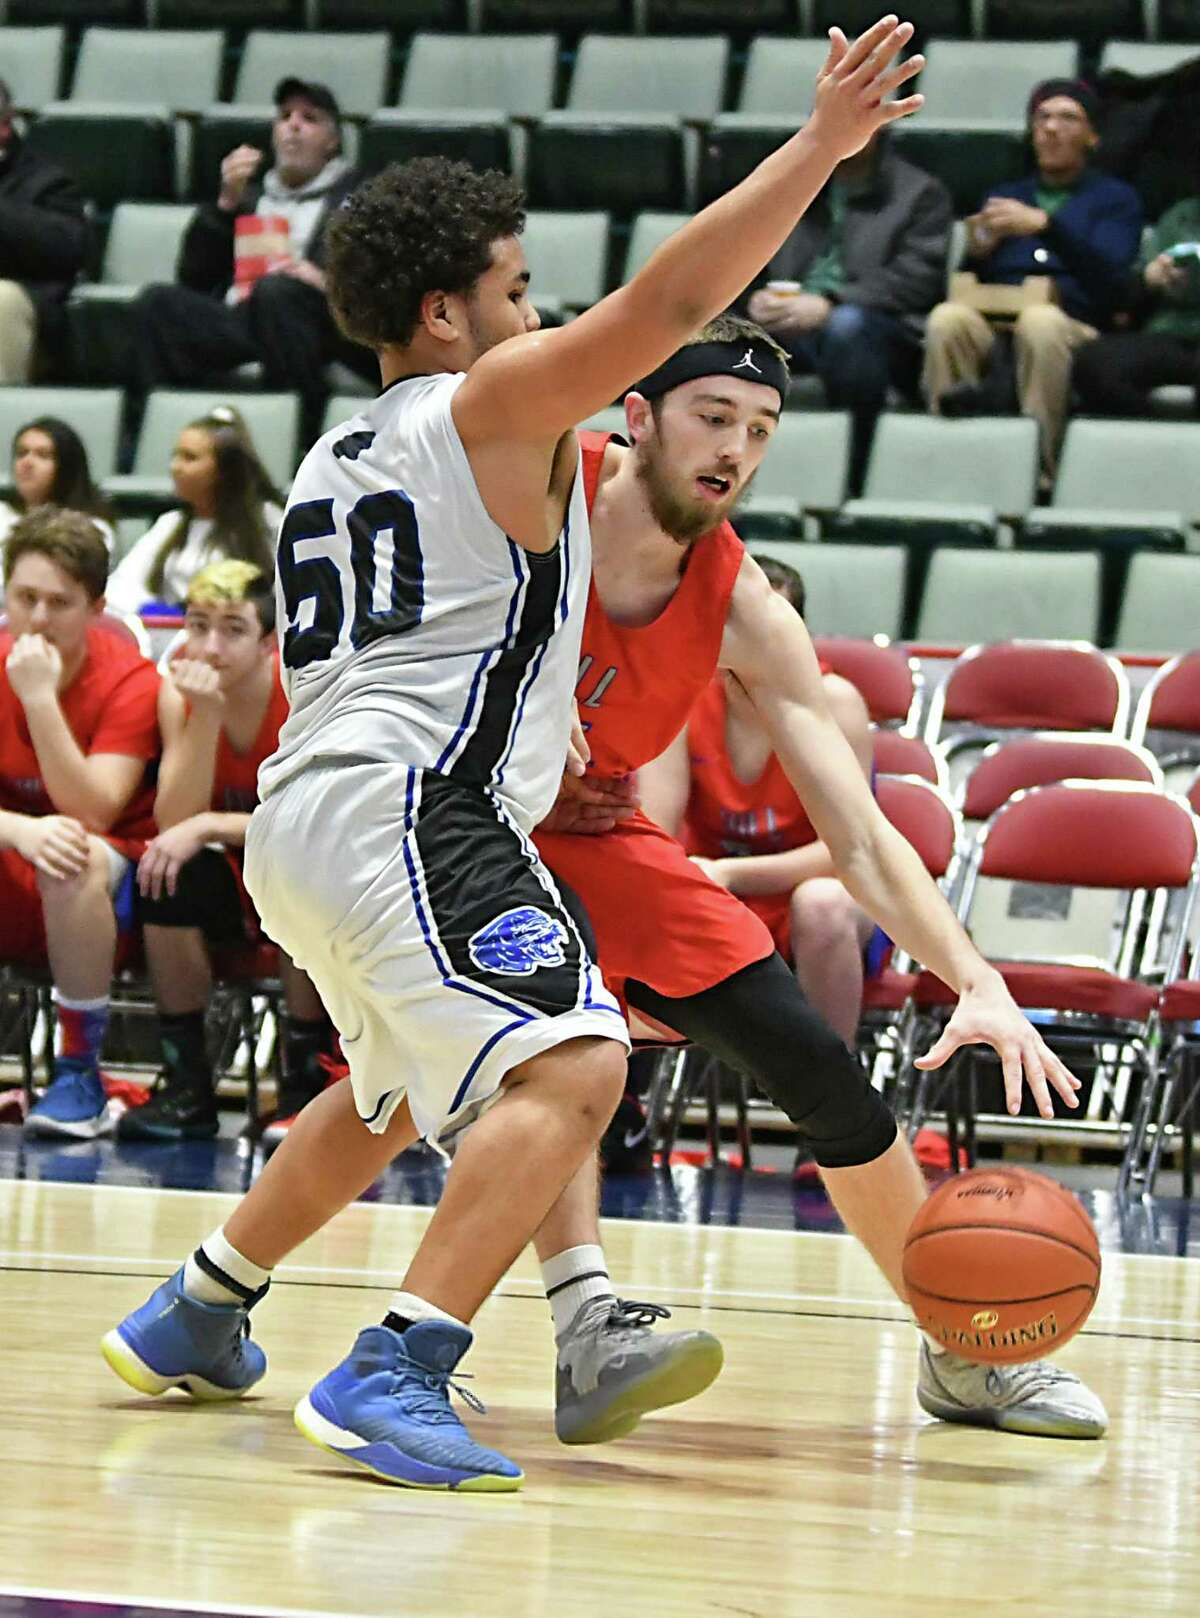 Hoosick Falls' Dmitri Rose defends Maple Hill's Nate Mannion during a Class C basketball semifinal game at the Cool Insuring Arena on Tuesday, Feb. 26, 2019 in Glens Falls, N.Y. (Lori Van Buren/Times Union)